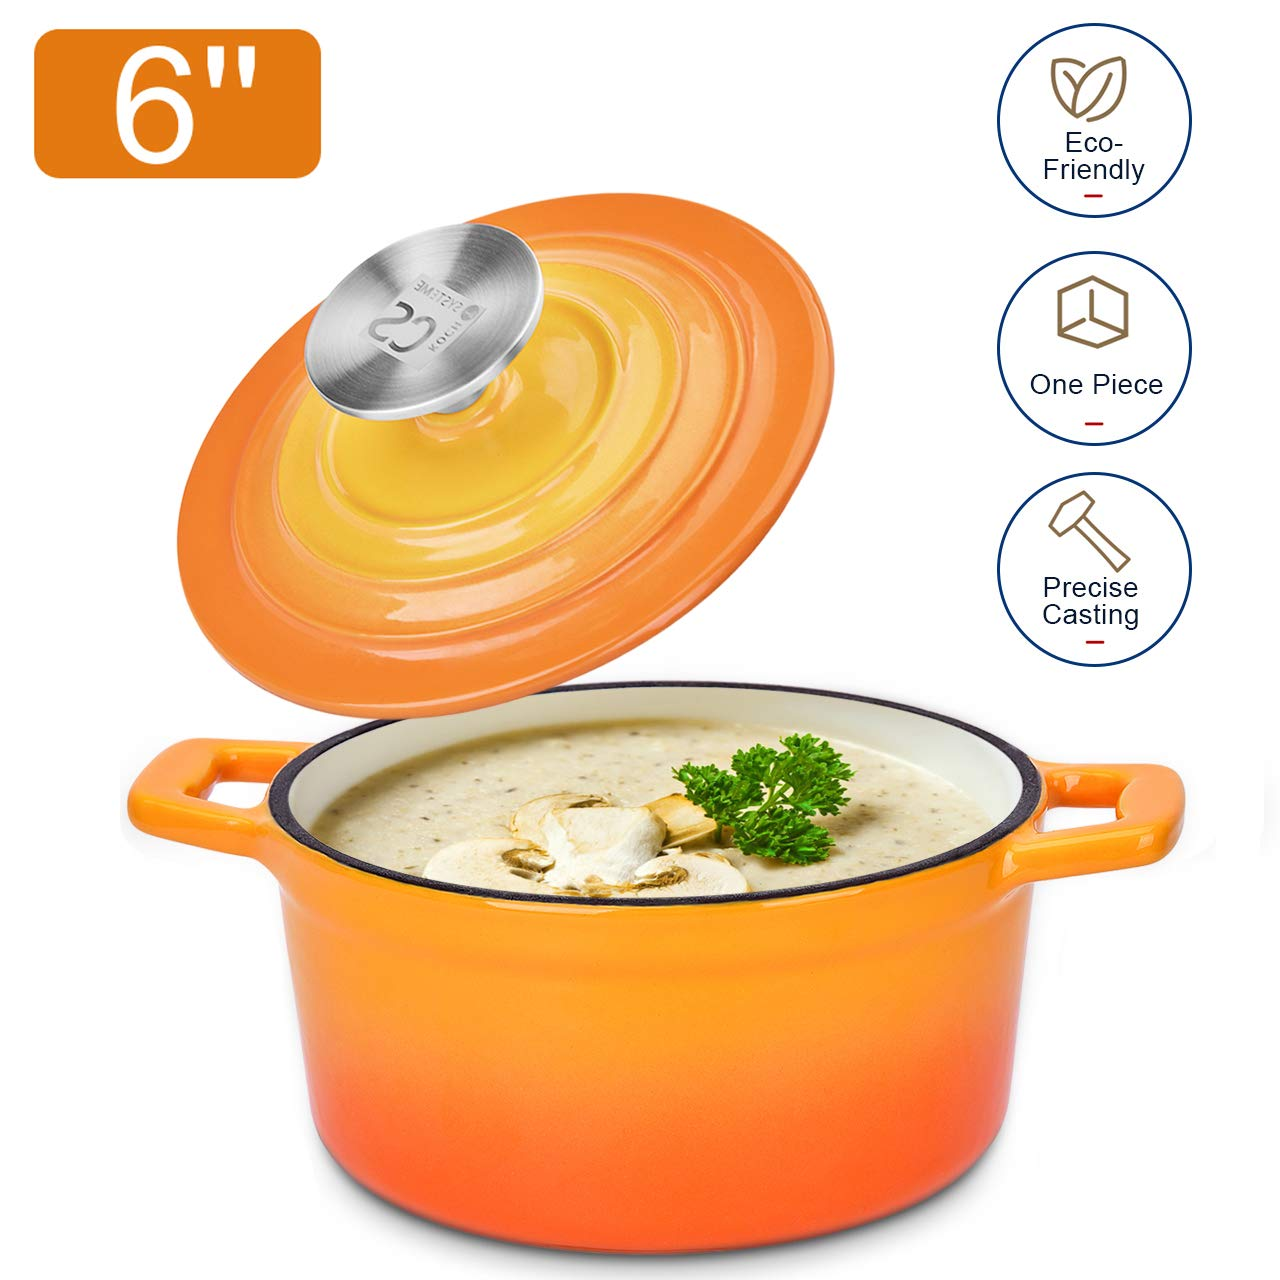 Dutch Oven Cast Iron Enamel Coating Cookware Casserole with Lid - 0.5-Quart (5.91 inches) , Sunset Orange Cocotte, Versatile Saucepan with Lid, Stew Pot